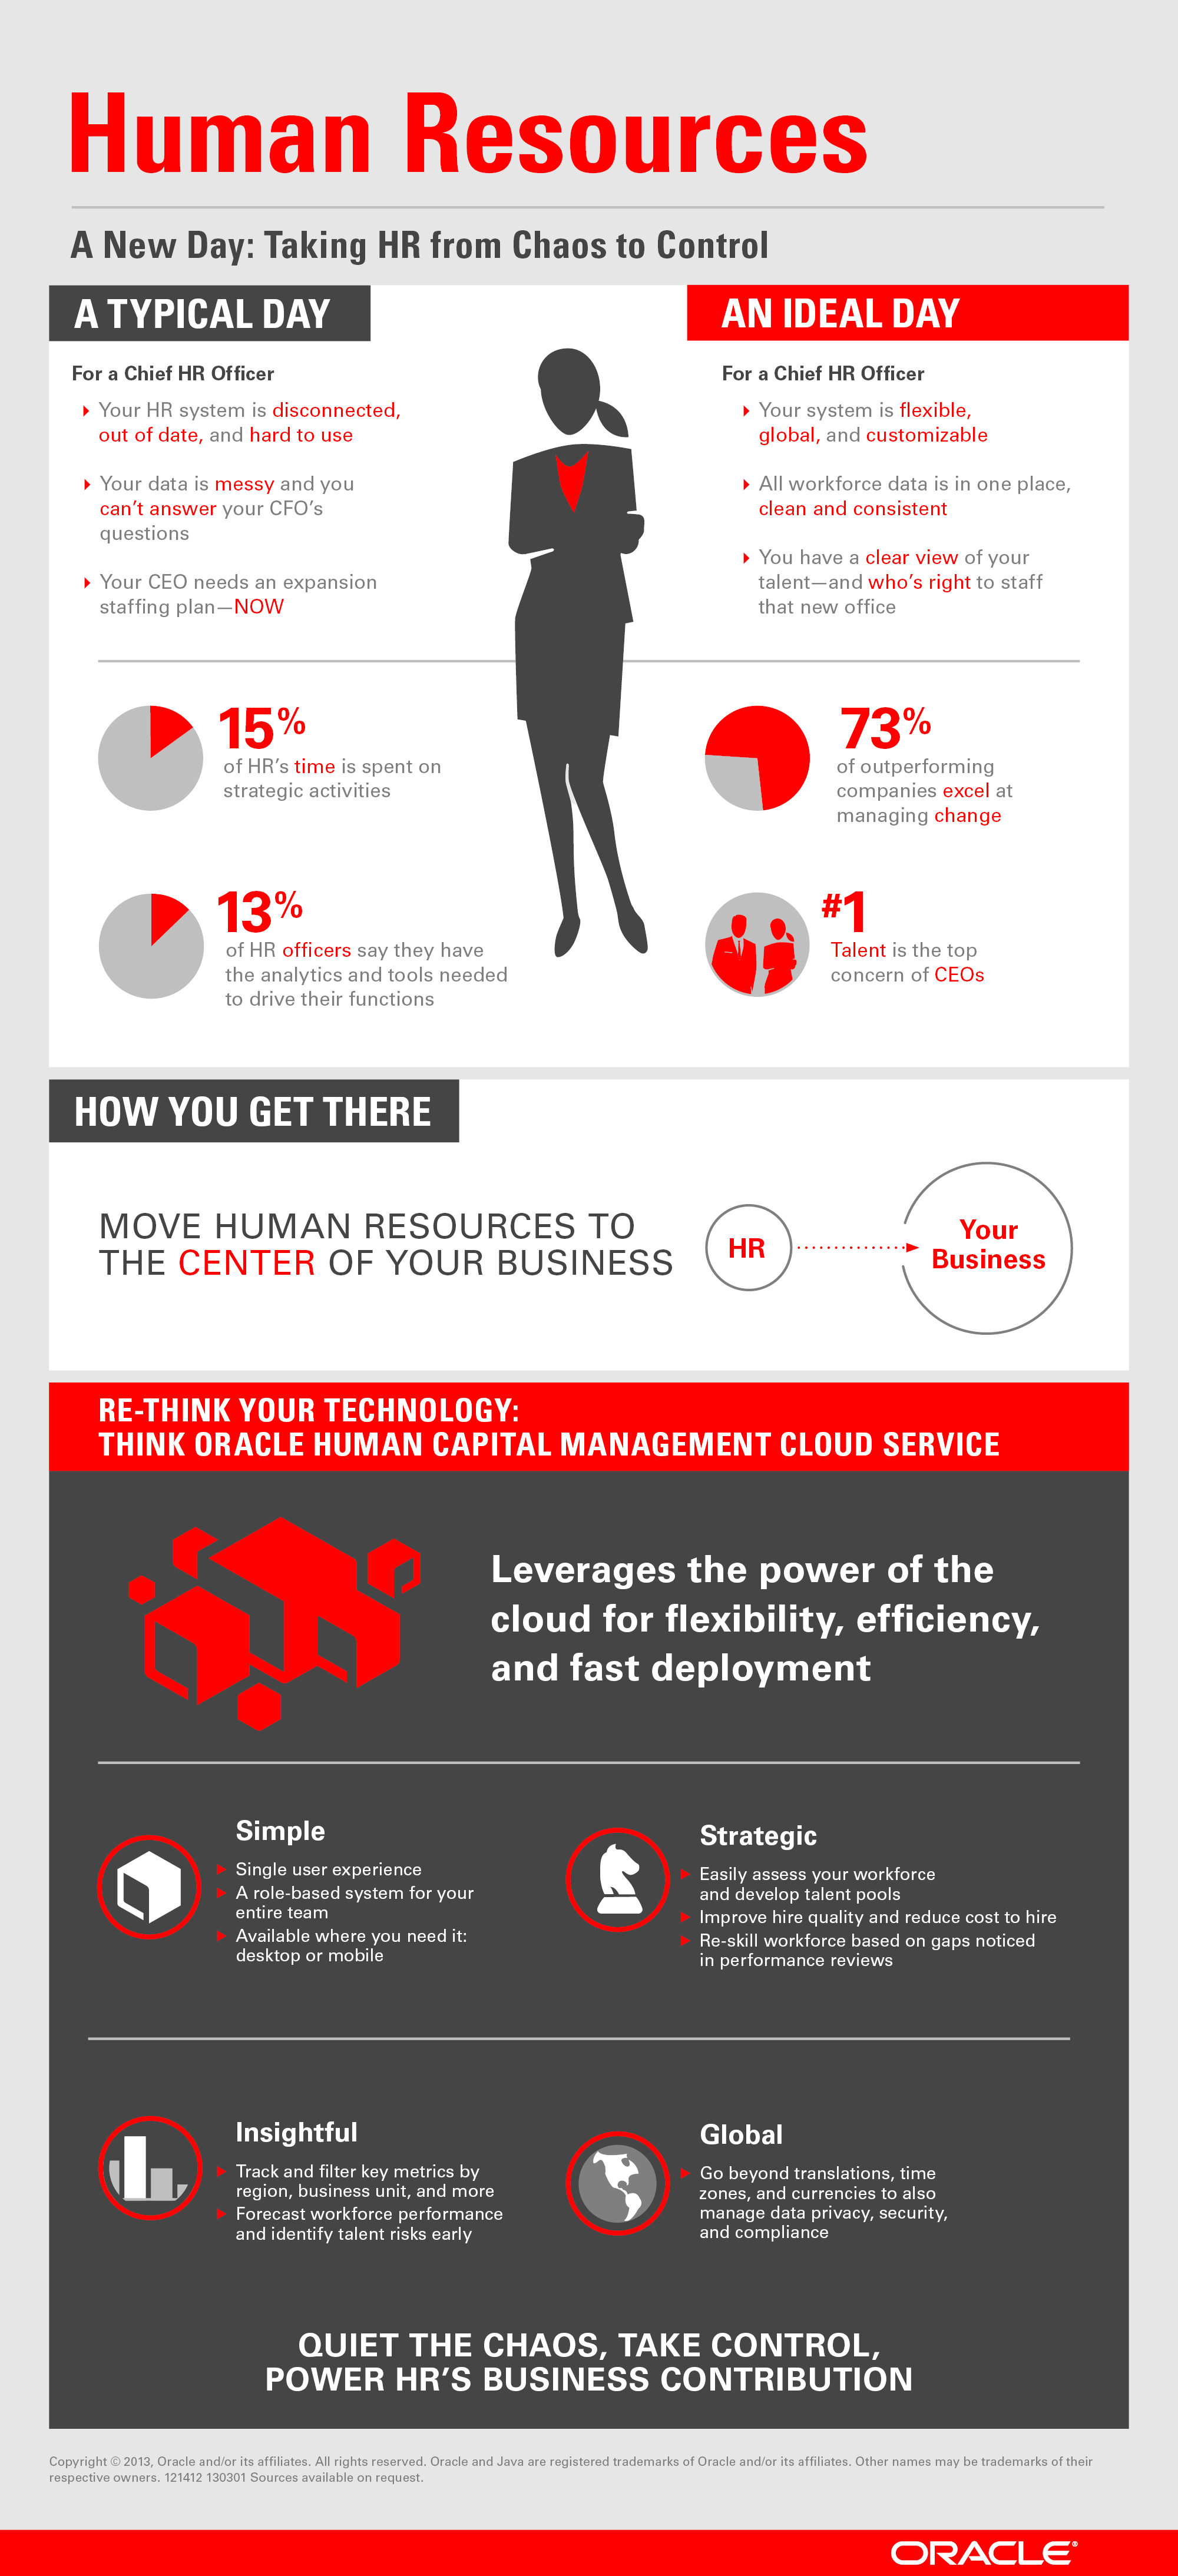 121412_HCM_Infographic_Oracle_08_D.jpg